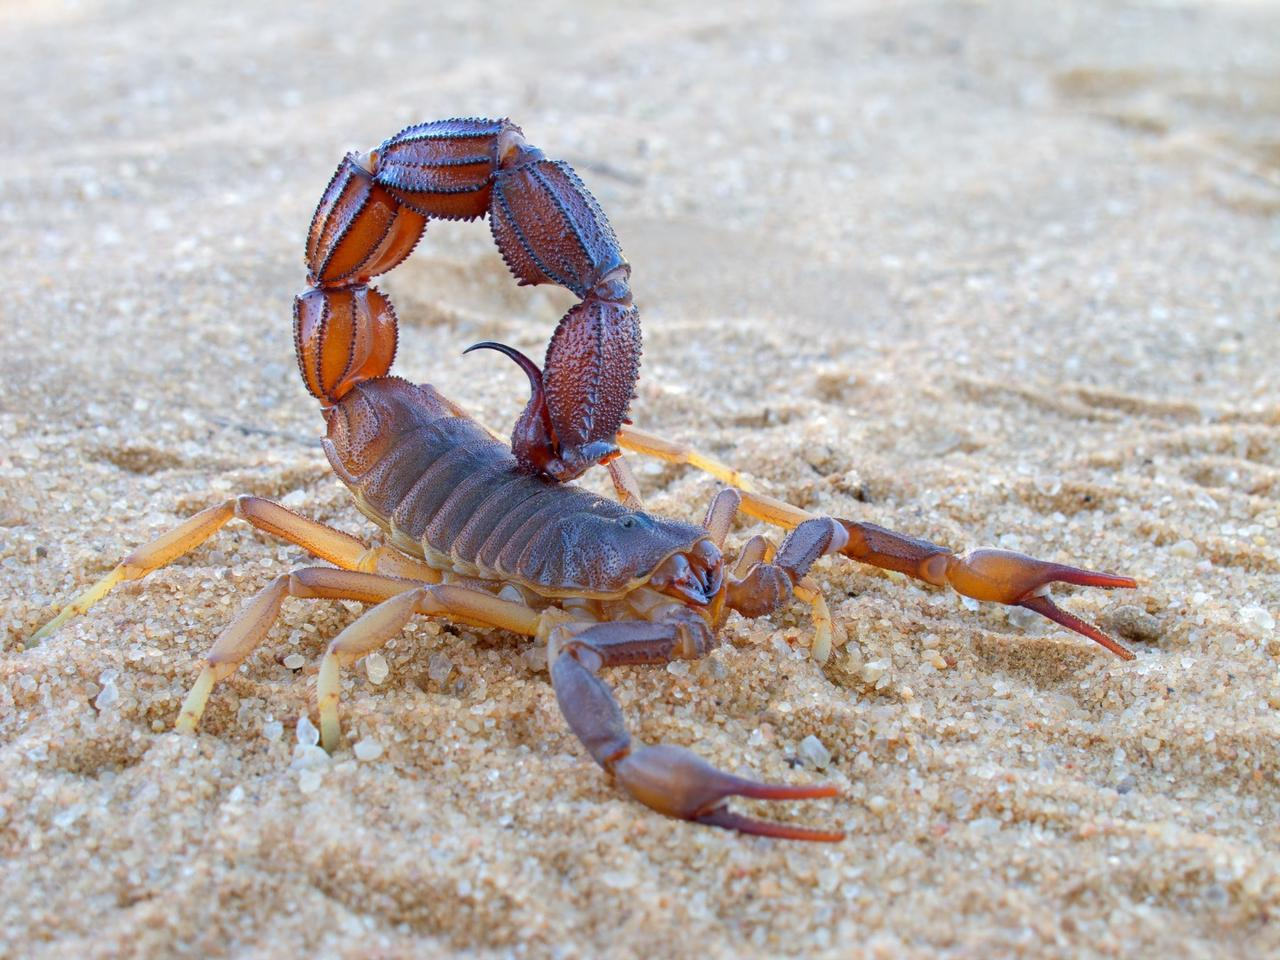 A peptide inscorpion venom was found to selectively bind to brain tumor cells, so a synthesized version was made for use in surgical imaging scenarios